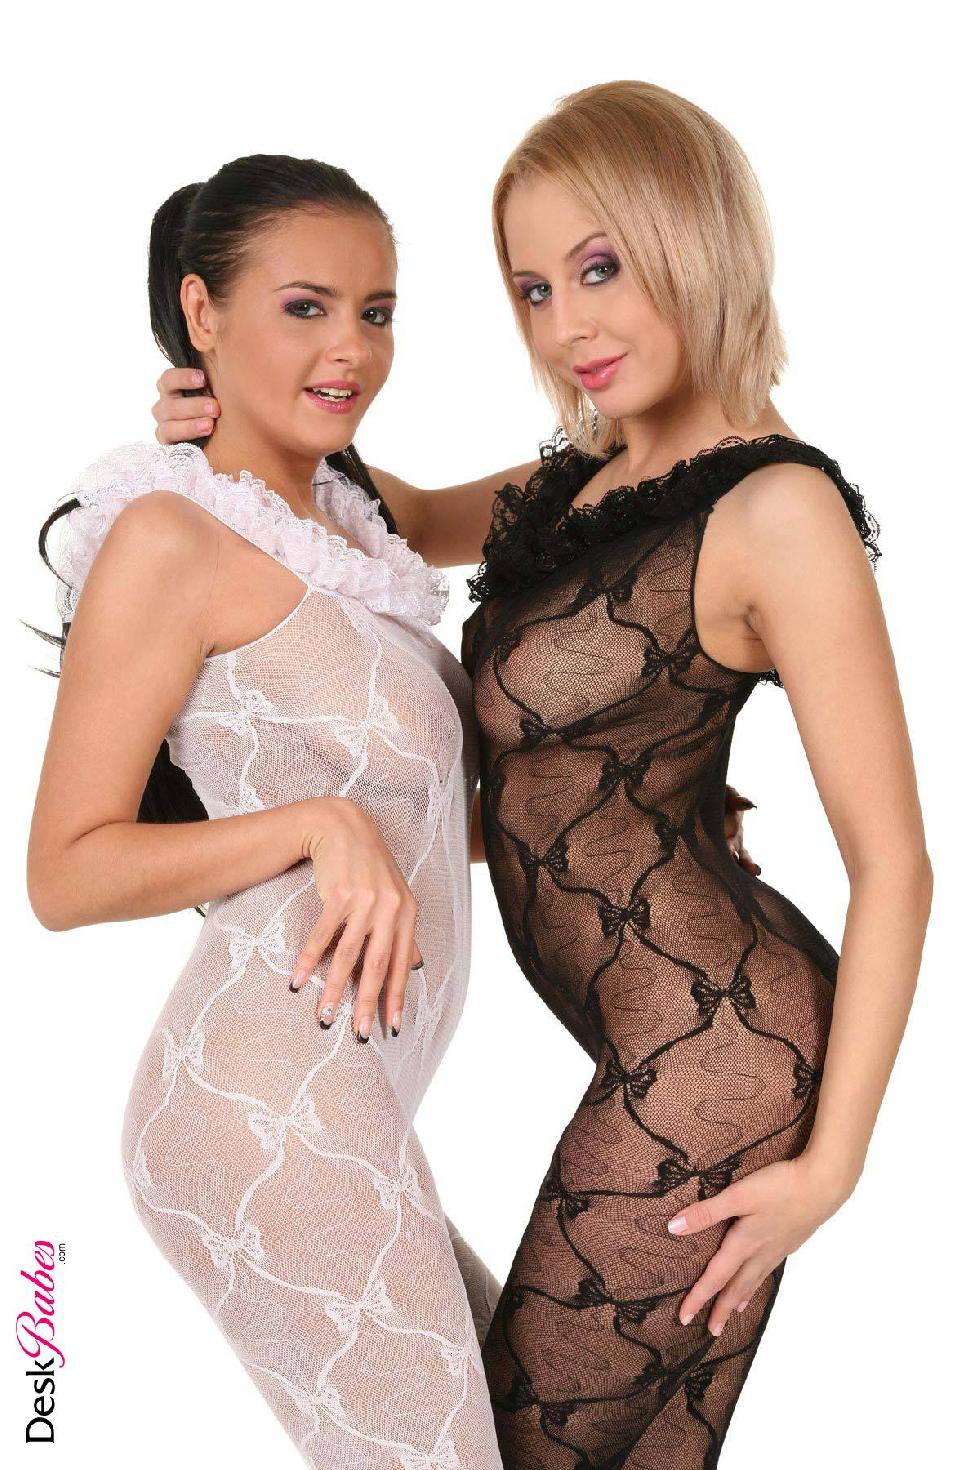 two hot babes in sexy bodystocking - mandy dee and candy alexa (16